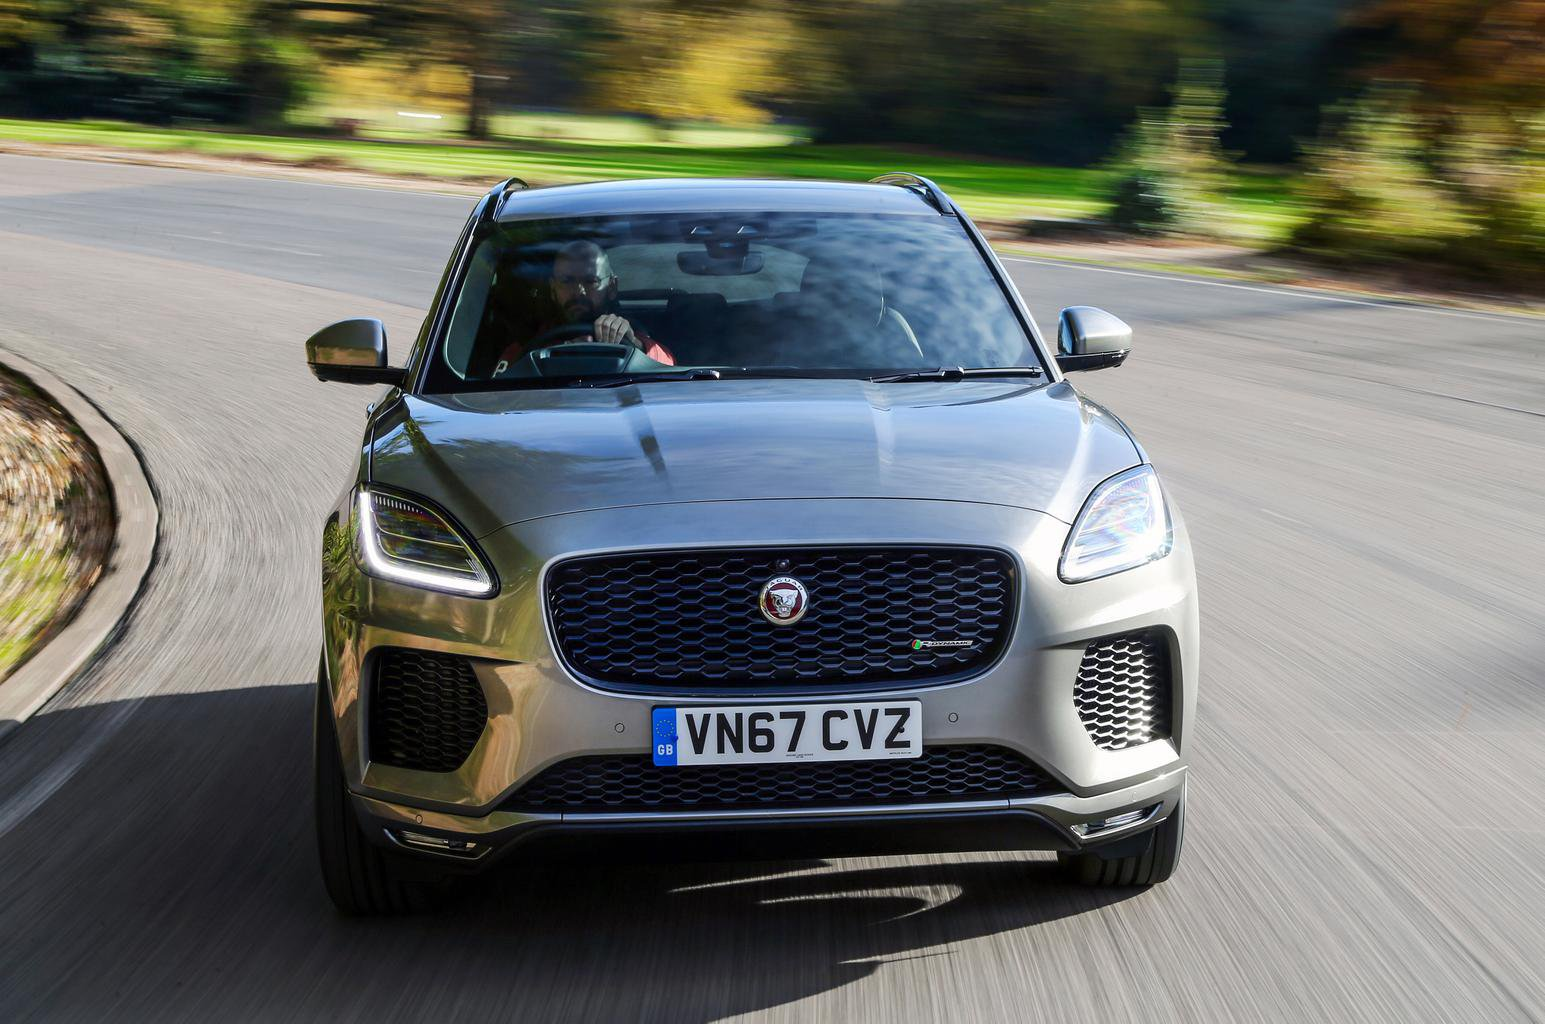 2017 Jaguar E-Pace review – verdict